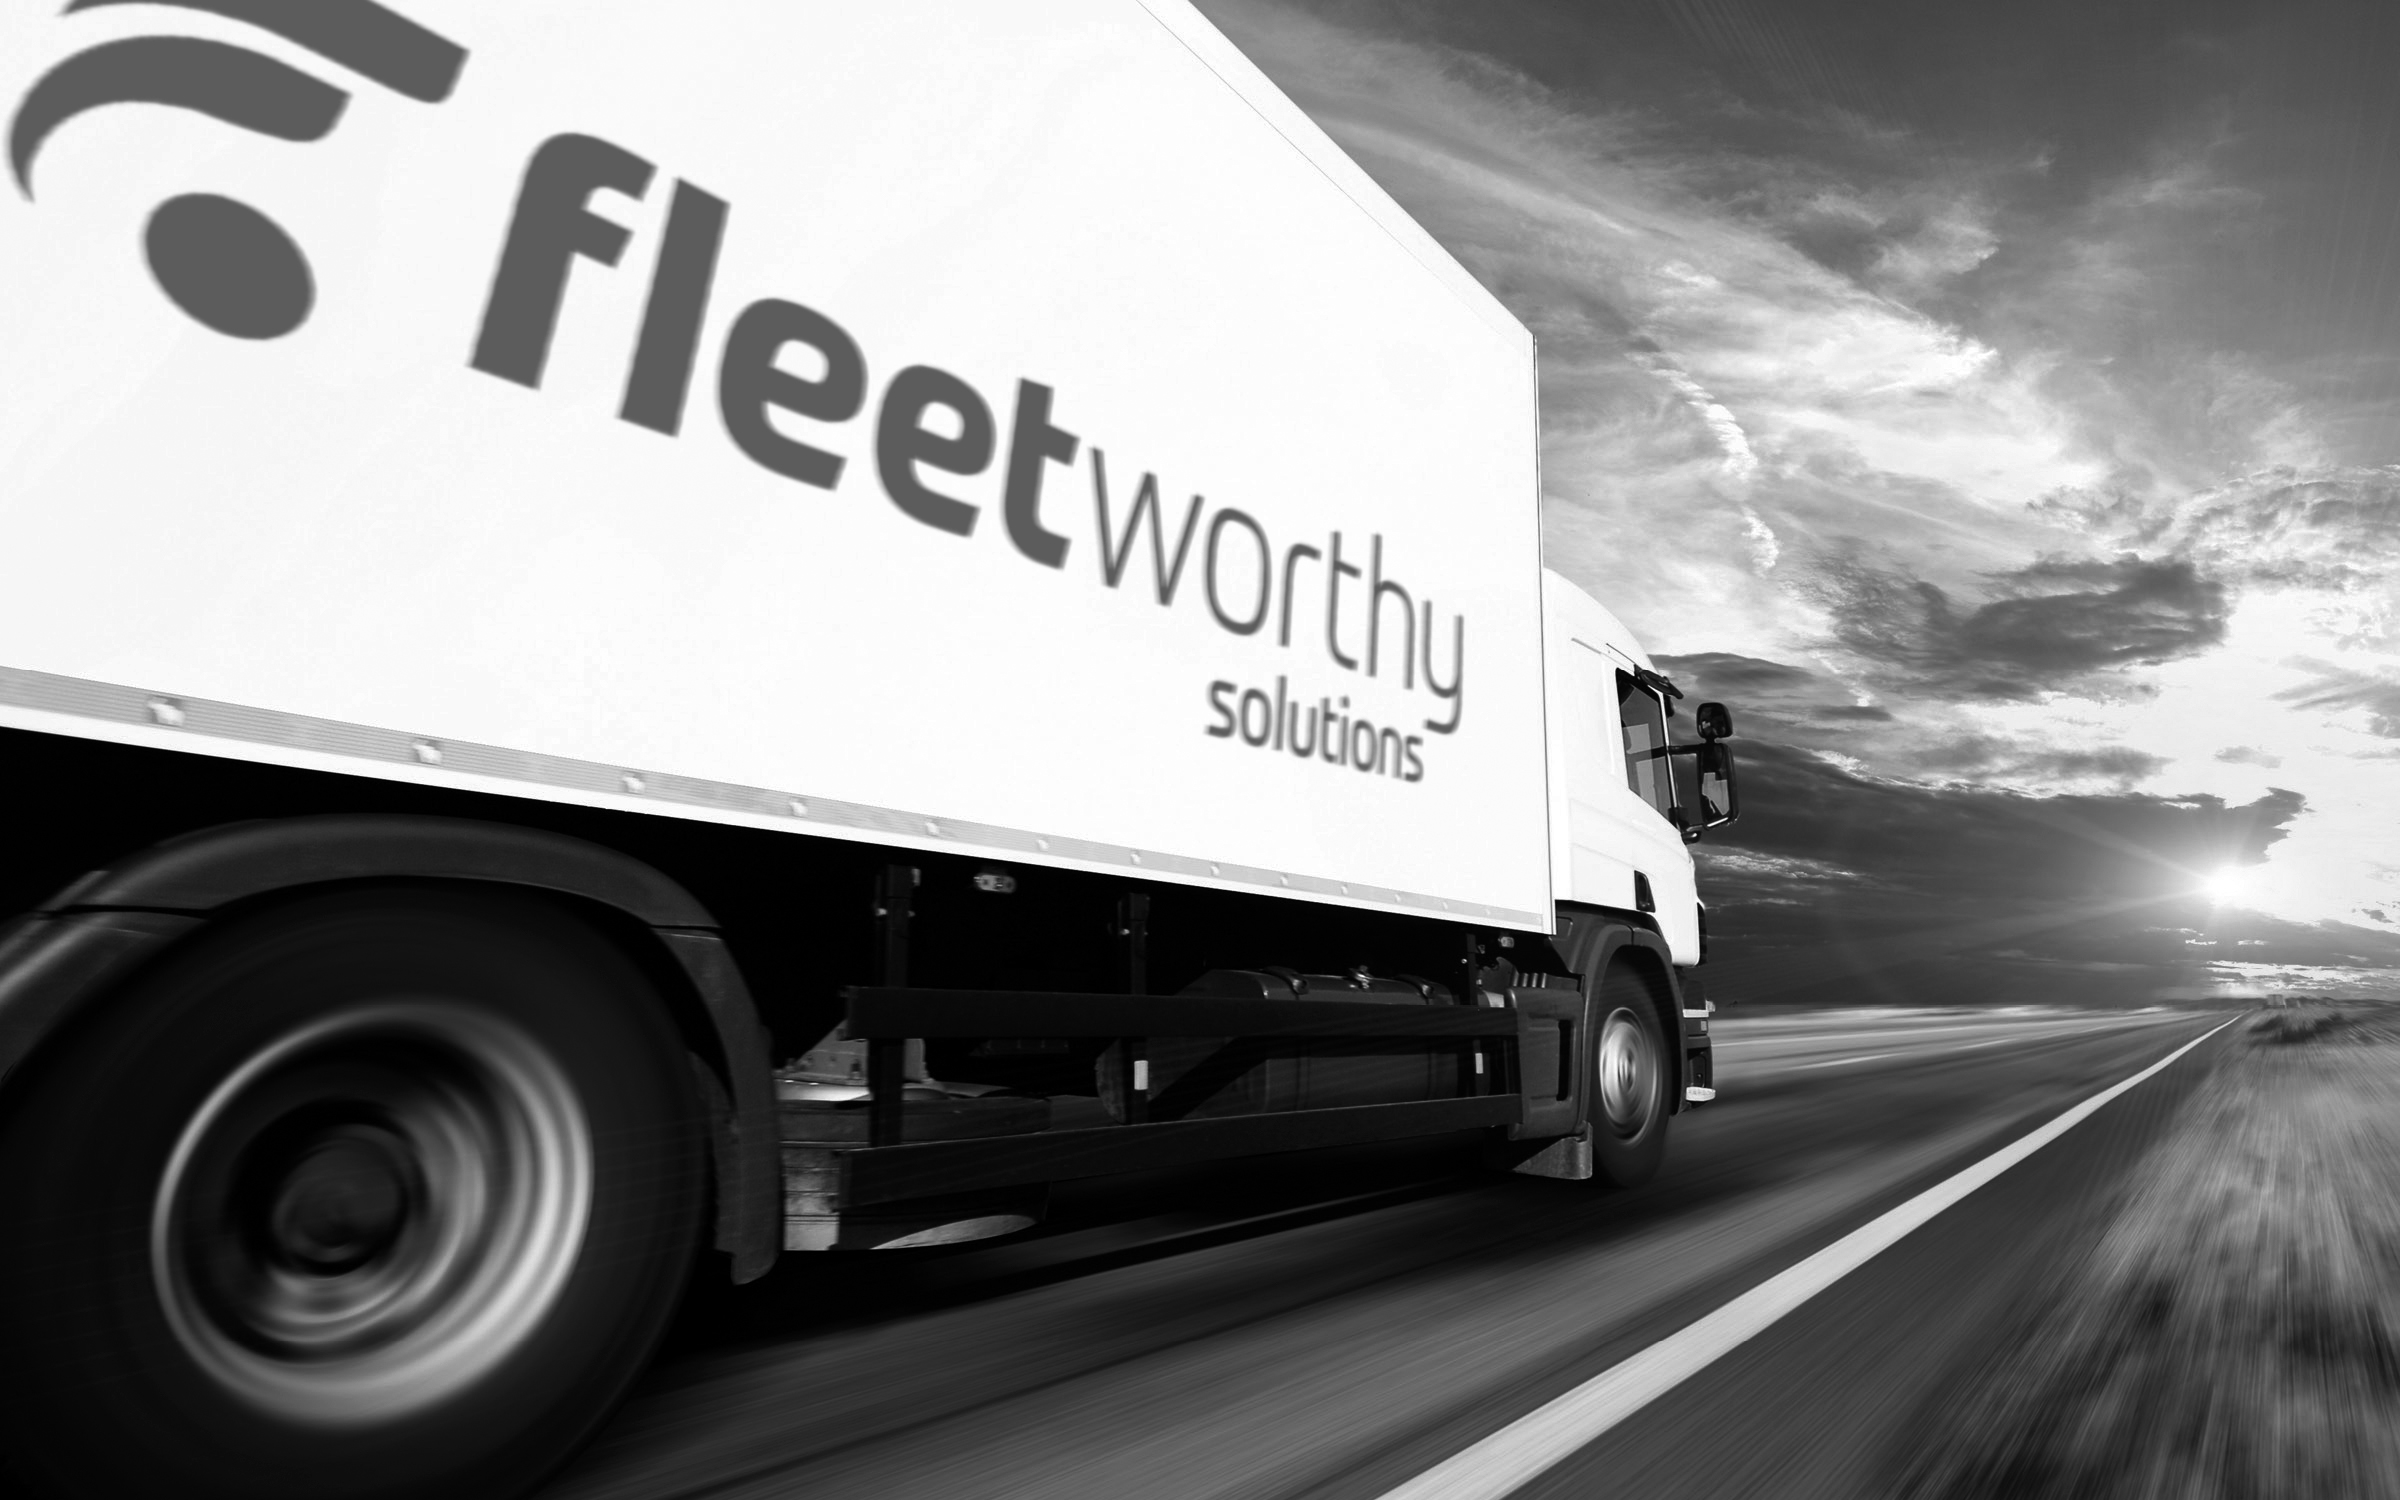 Its Compliance Rebrands As Fleetworthy Solutions